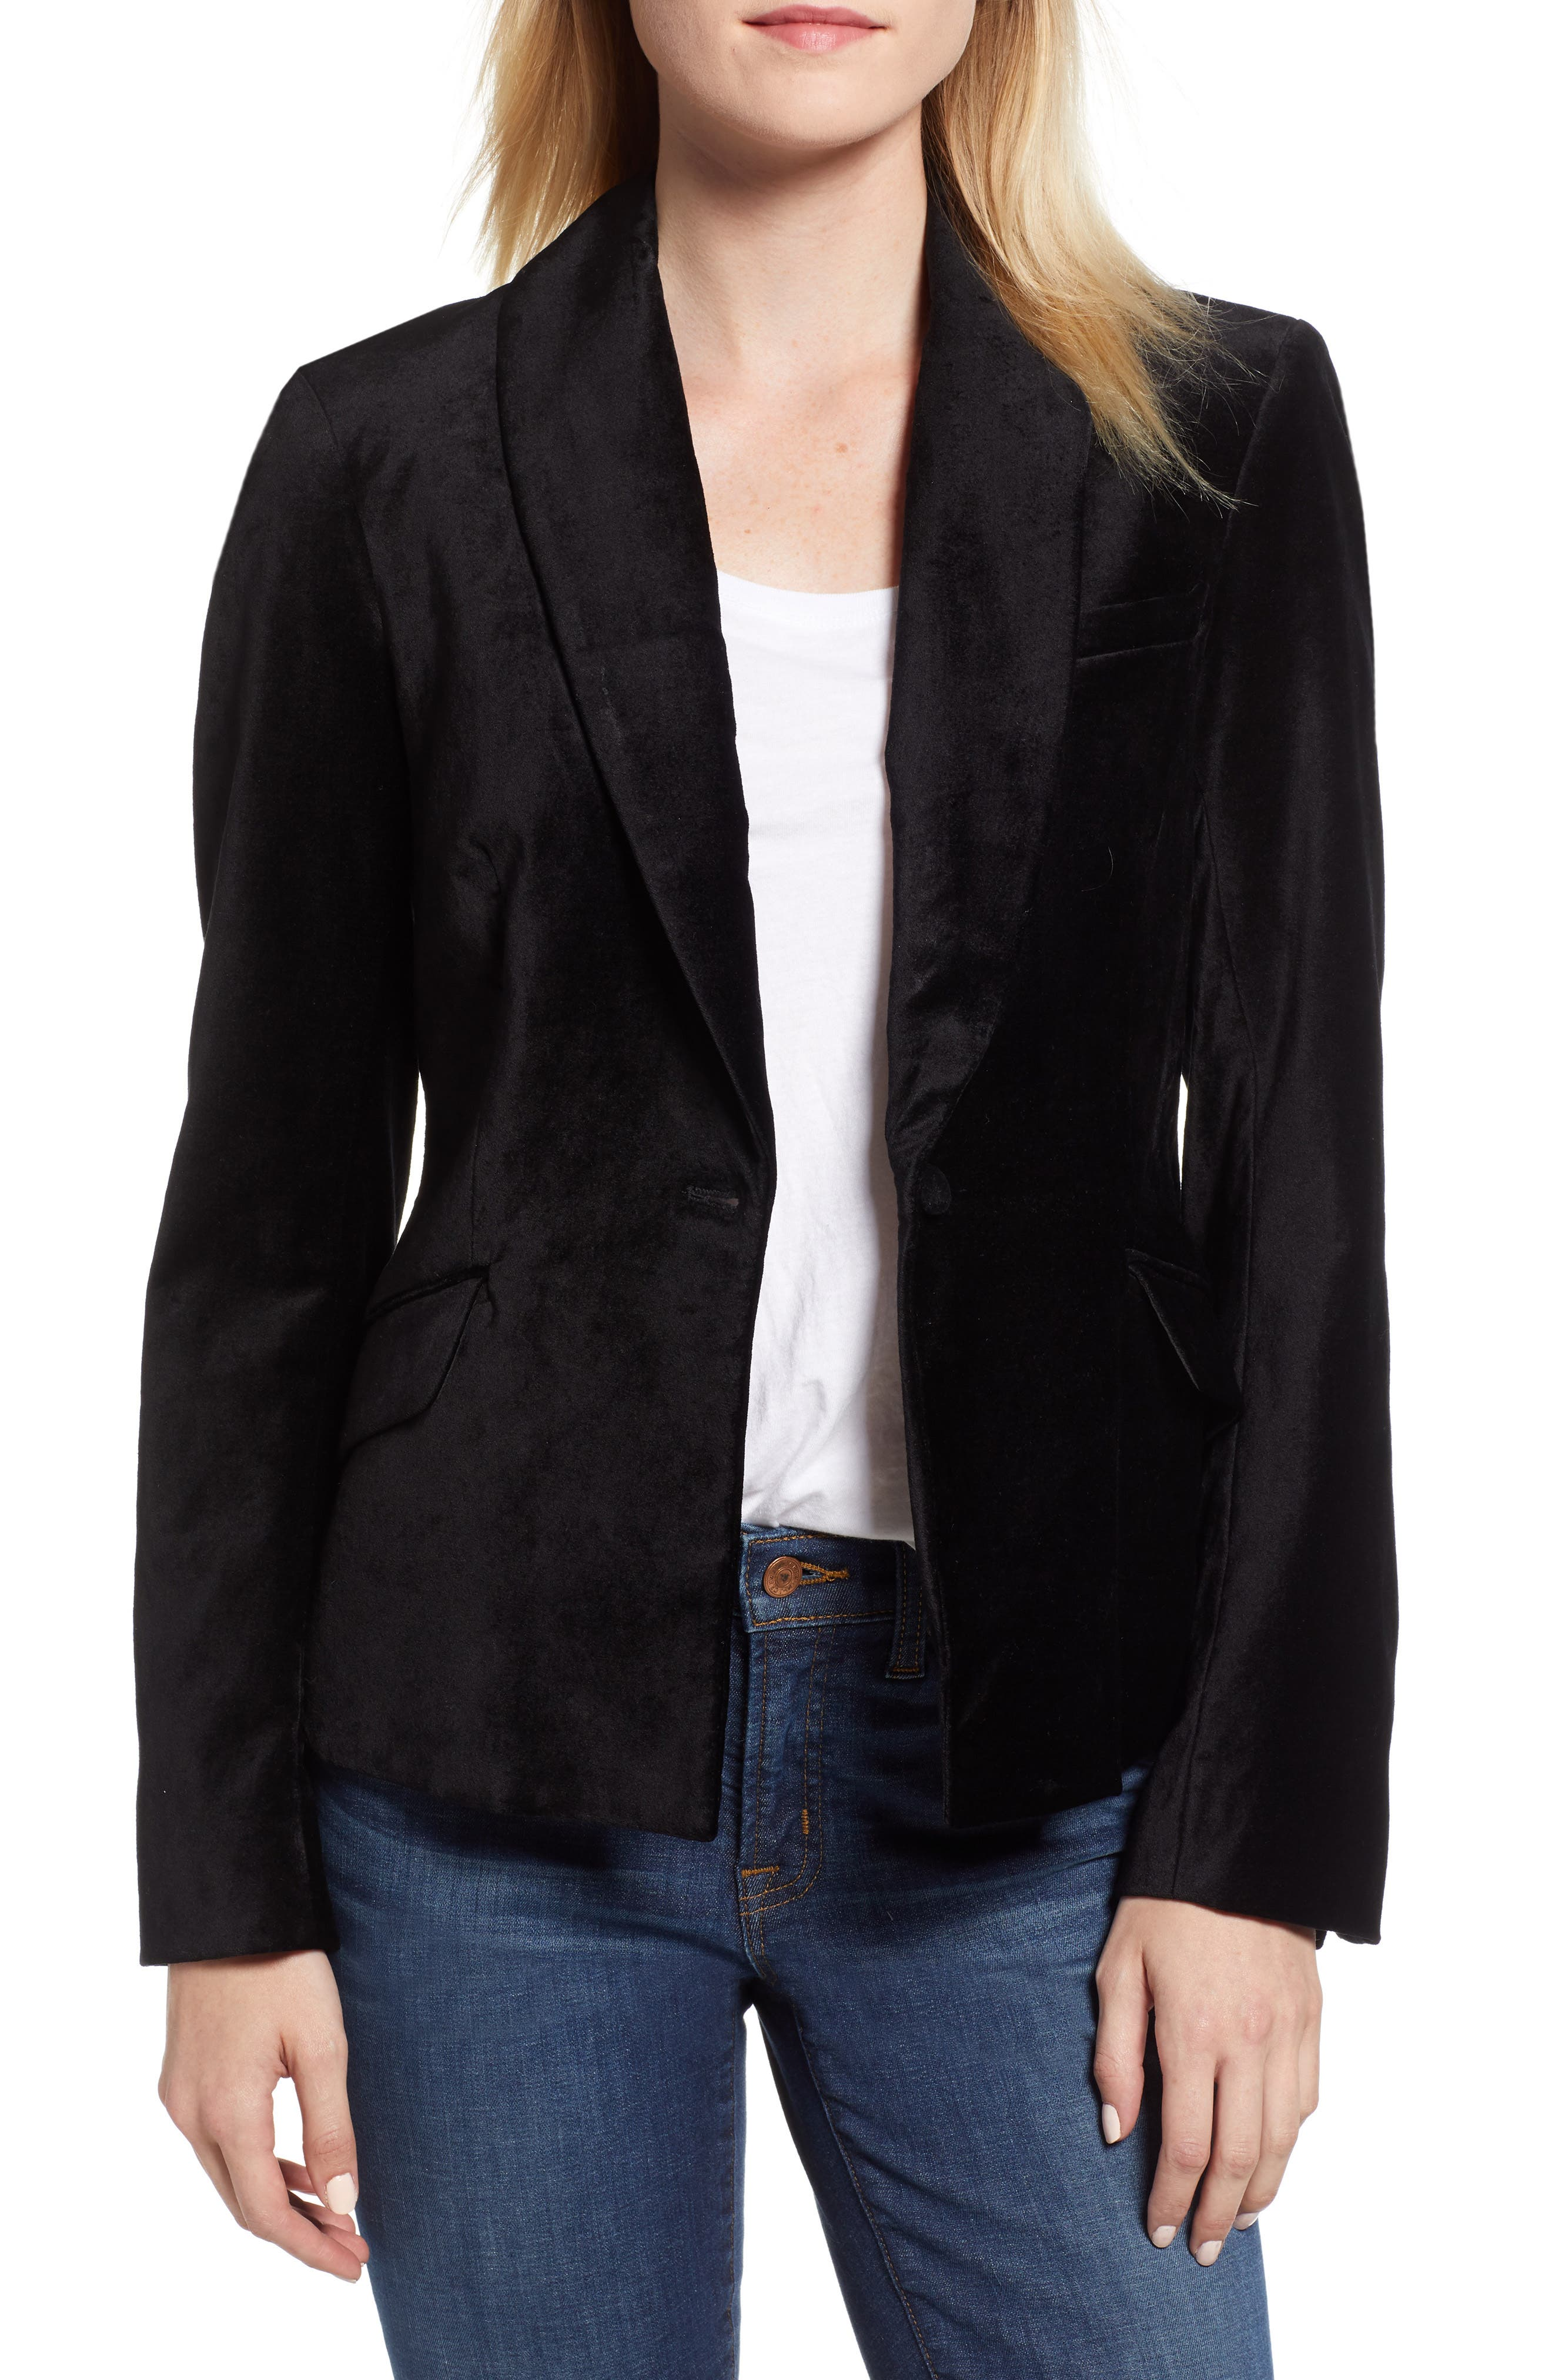 JEN7 BY 7 FOR ALL MANKIND Stretch Cotton Velvet Blazer, Main, color, BLACK